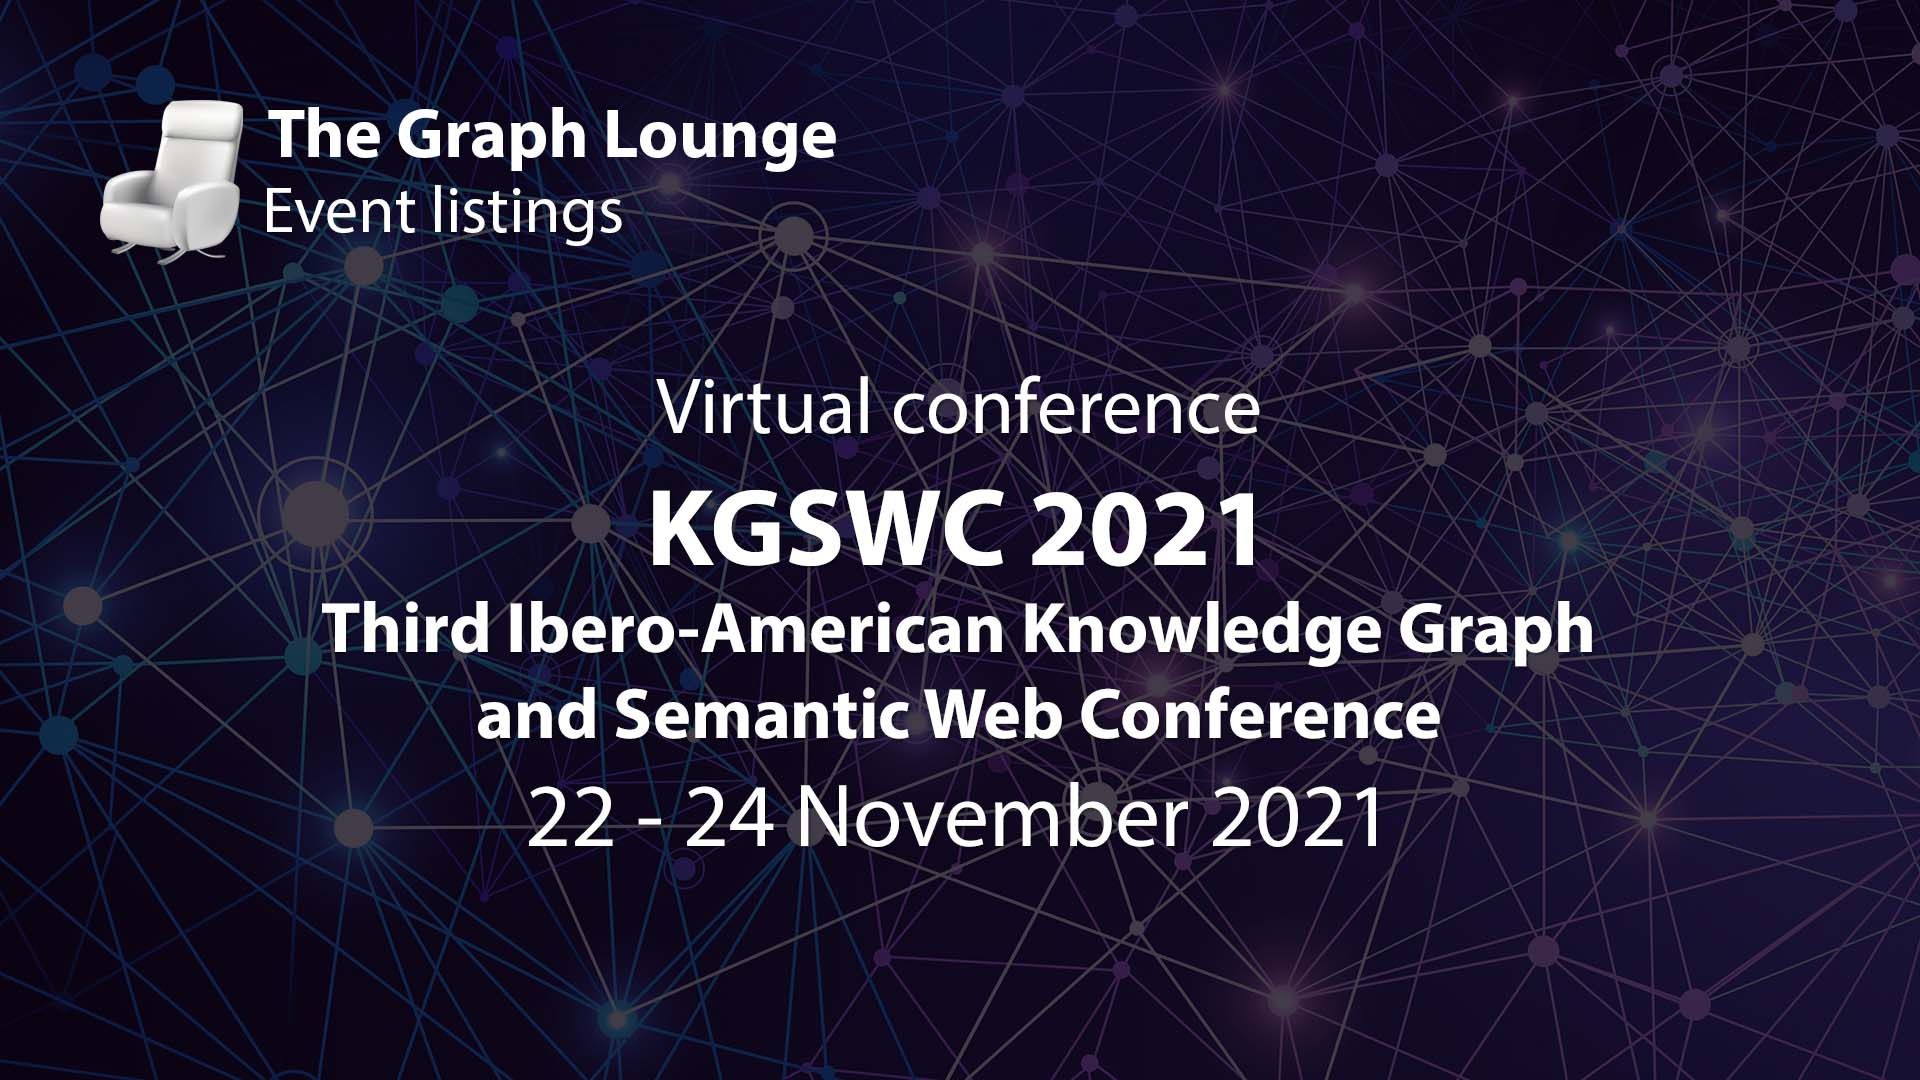 KGSWC 2021 (Third Ibero-American Knowledge Graph and Semantic Web Conference)